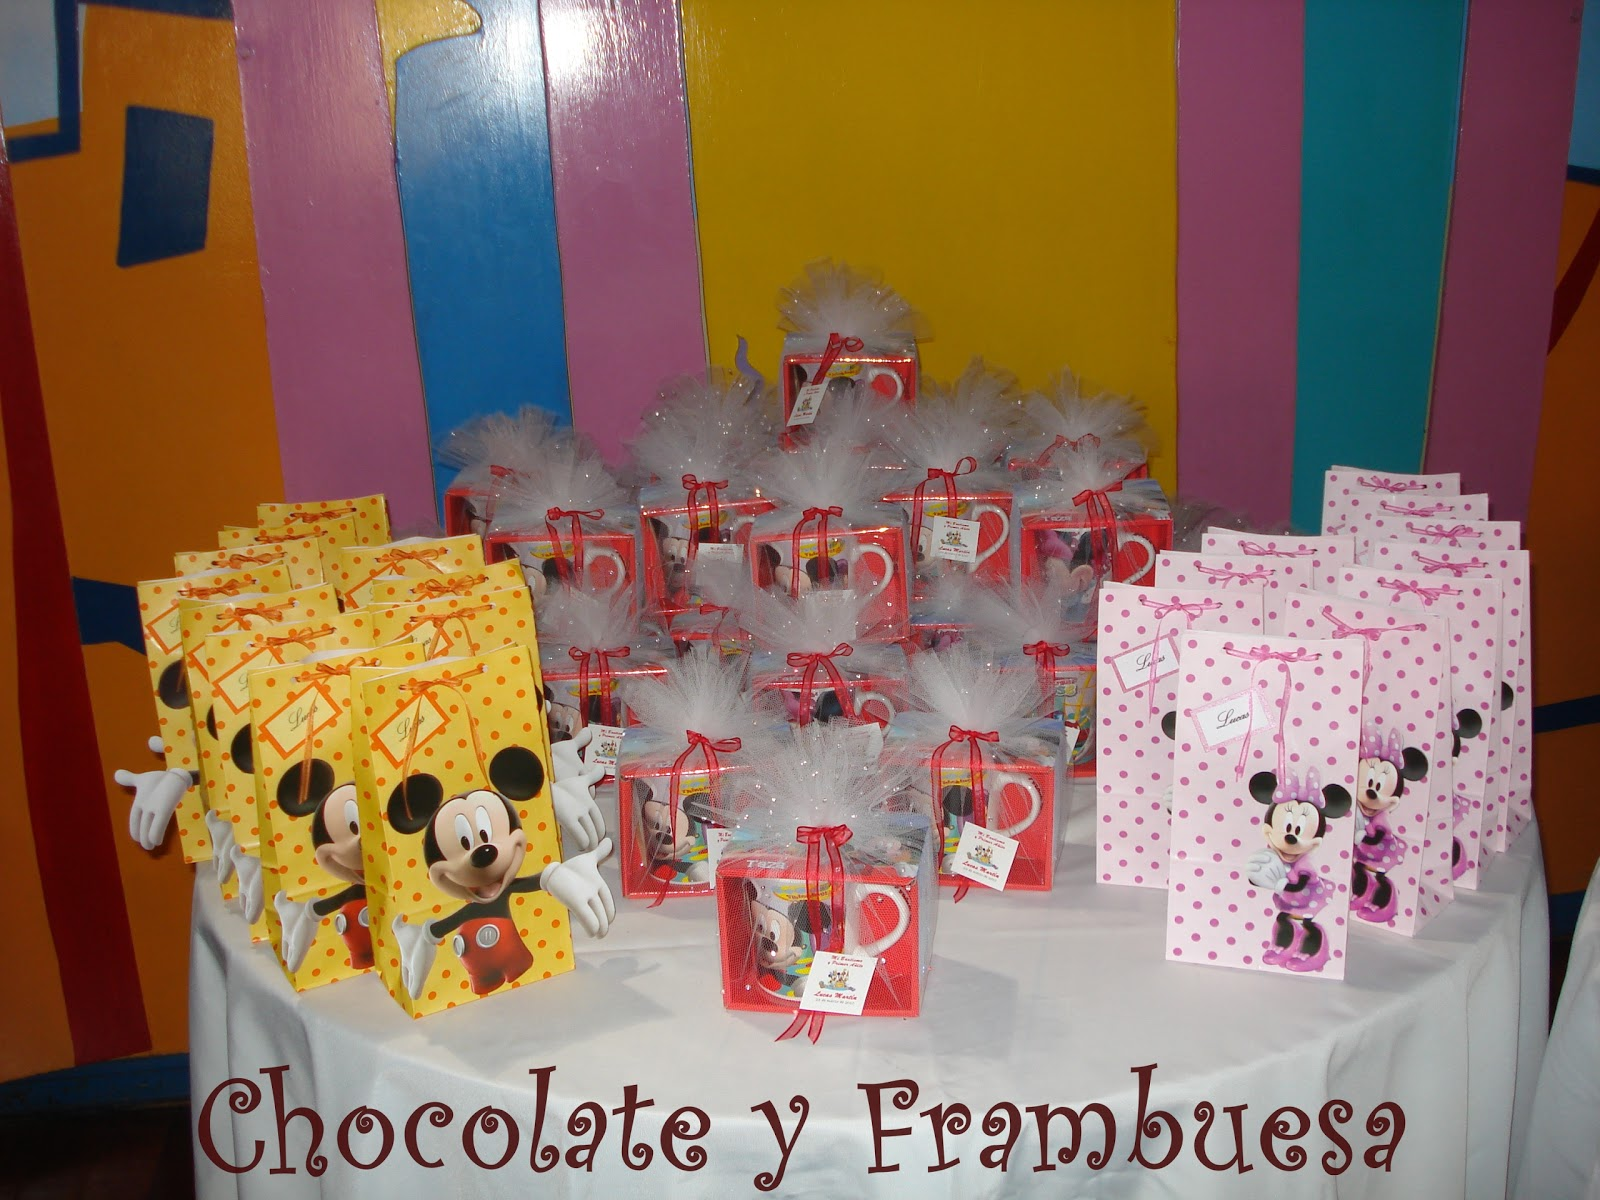 Chocolate Y Frambuesa